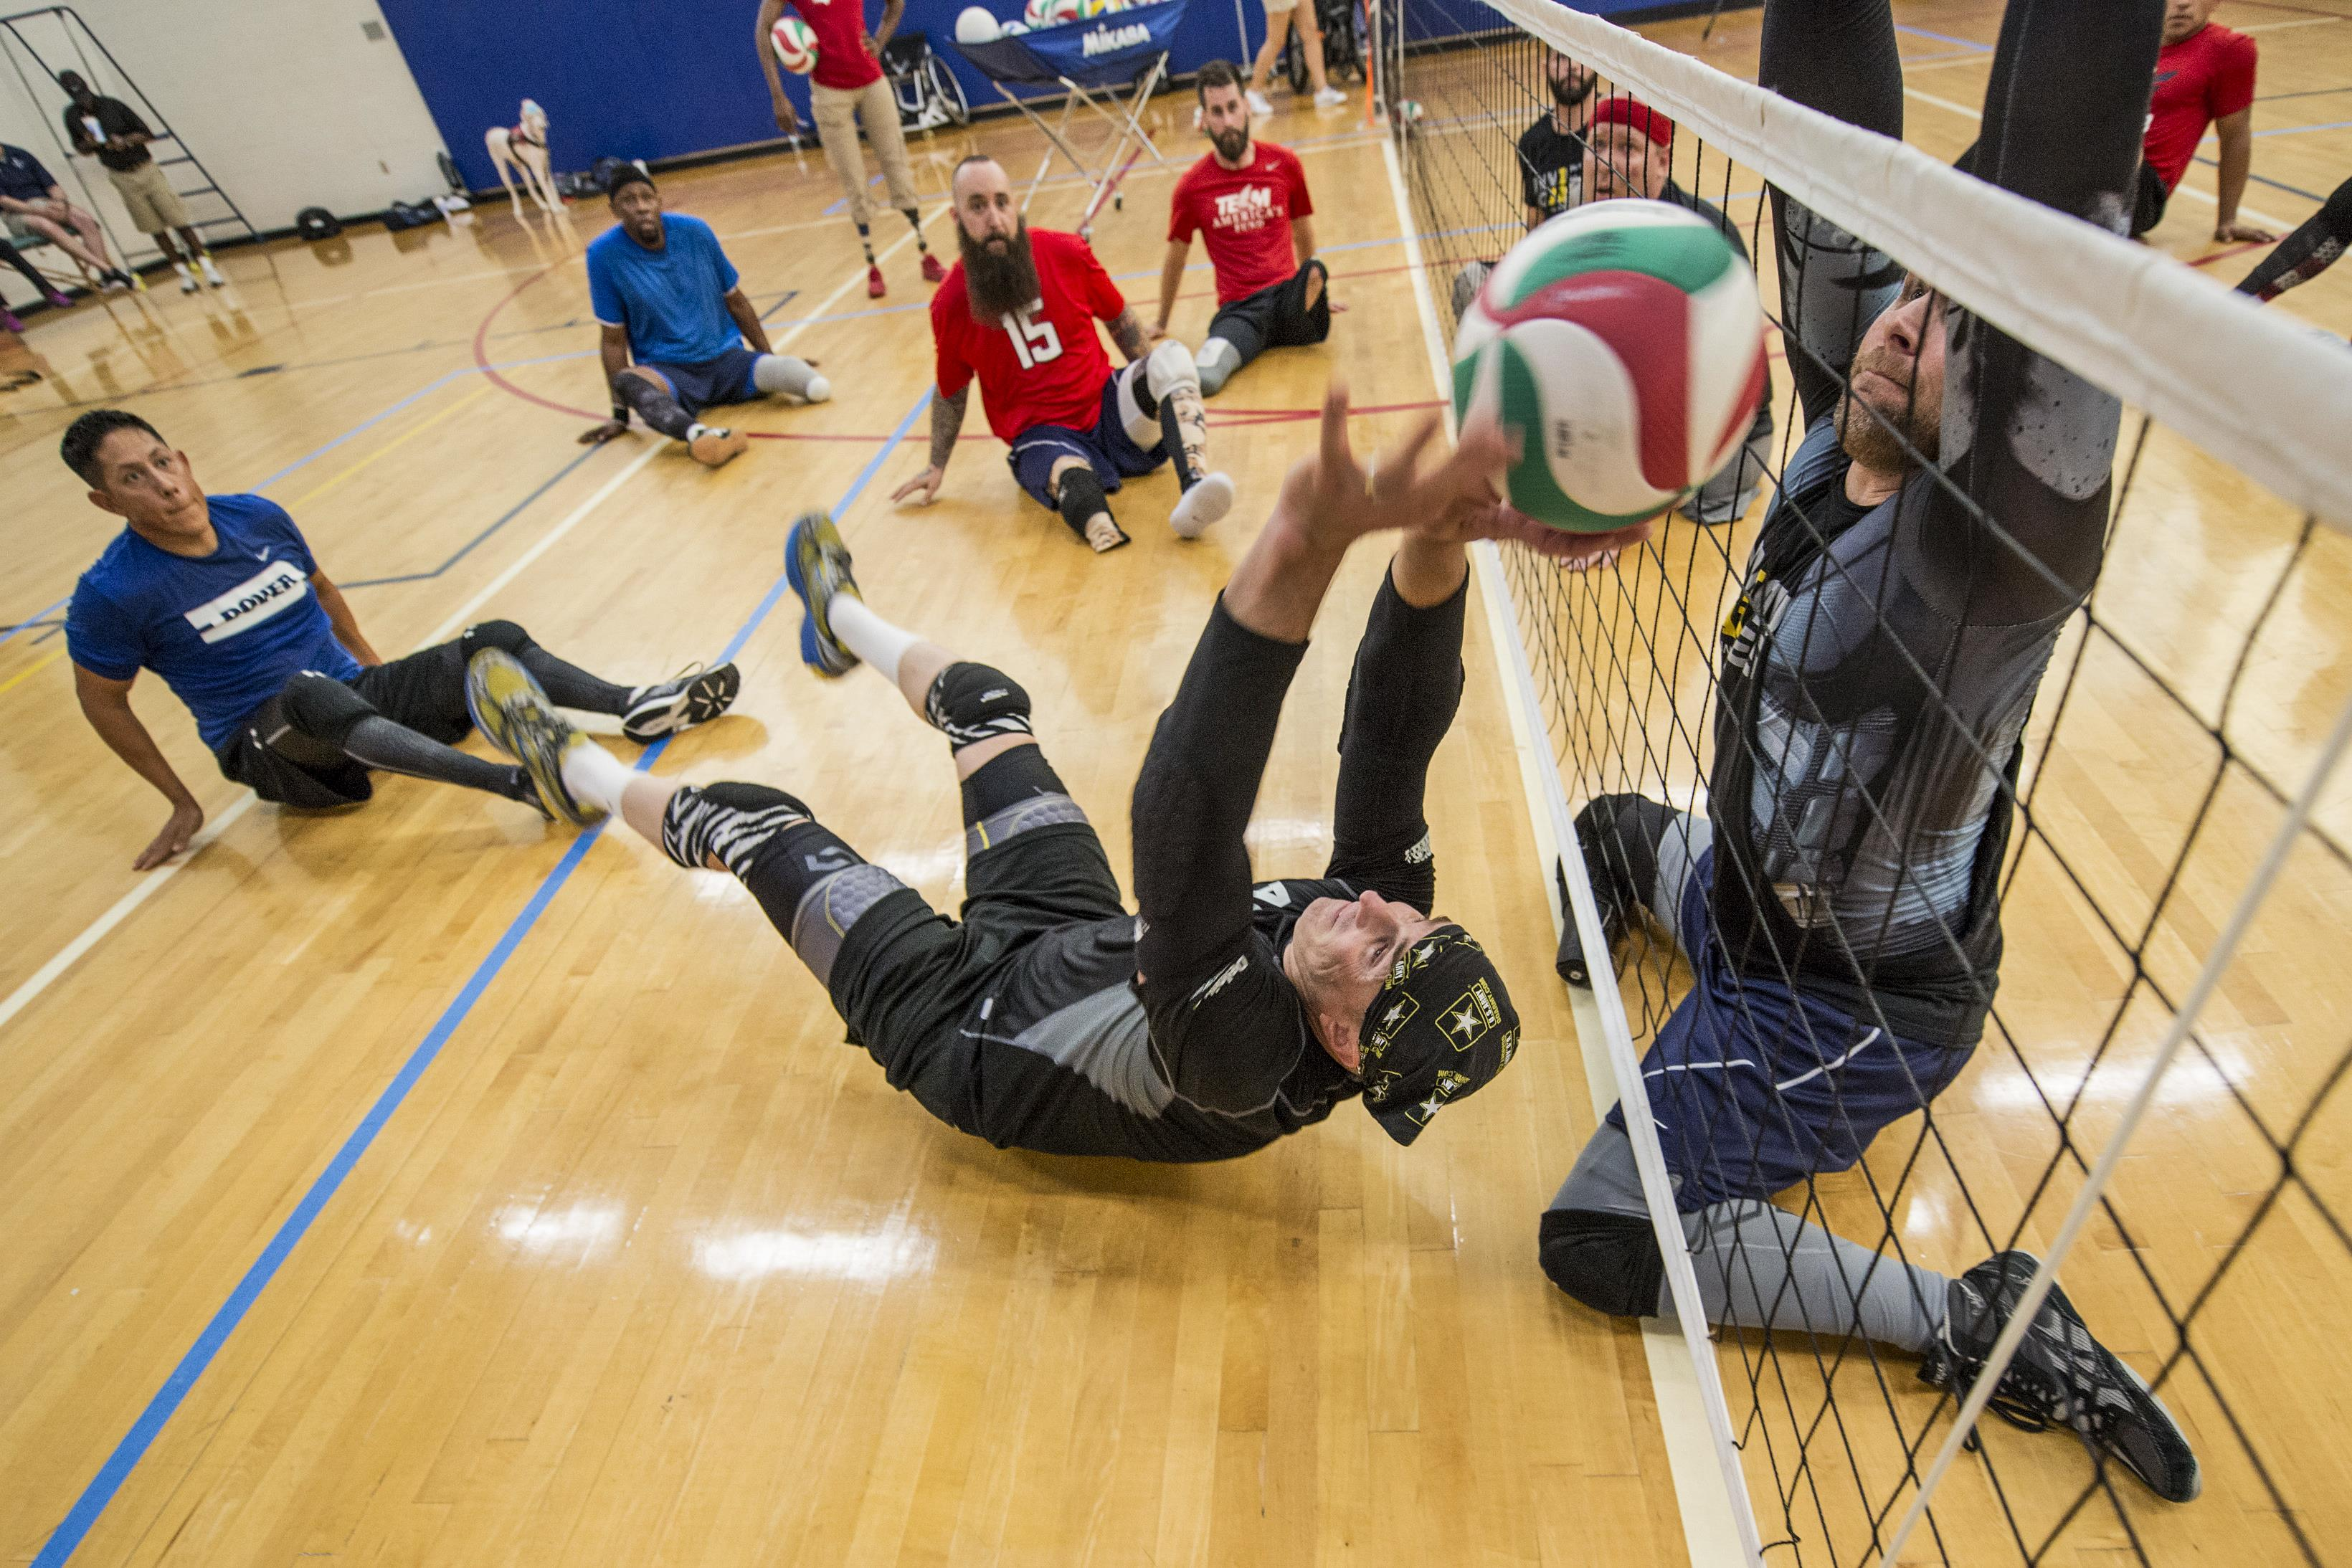 2016 invictus games recovering service members participate in volleyball training